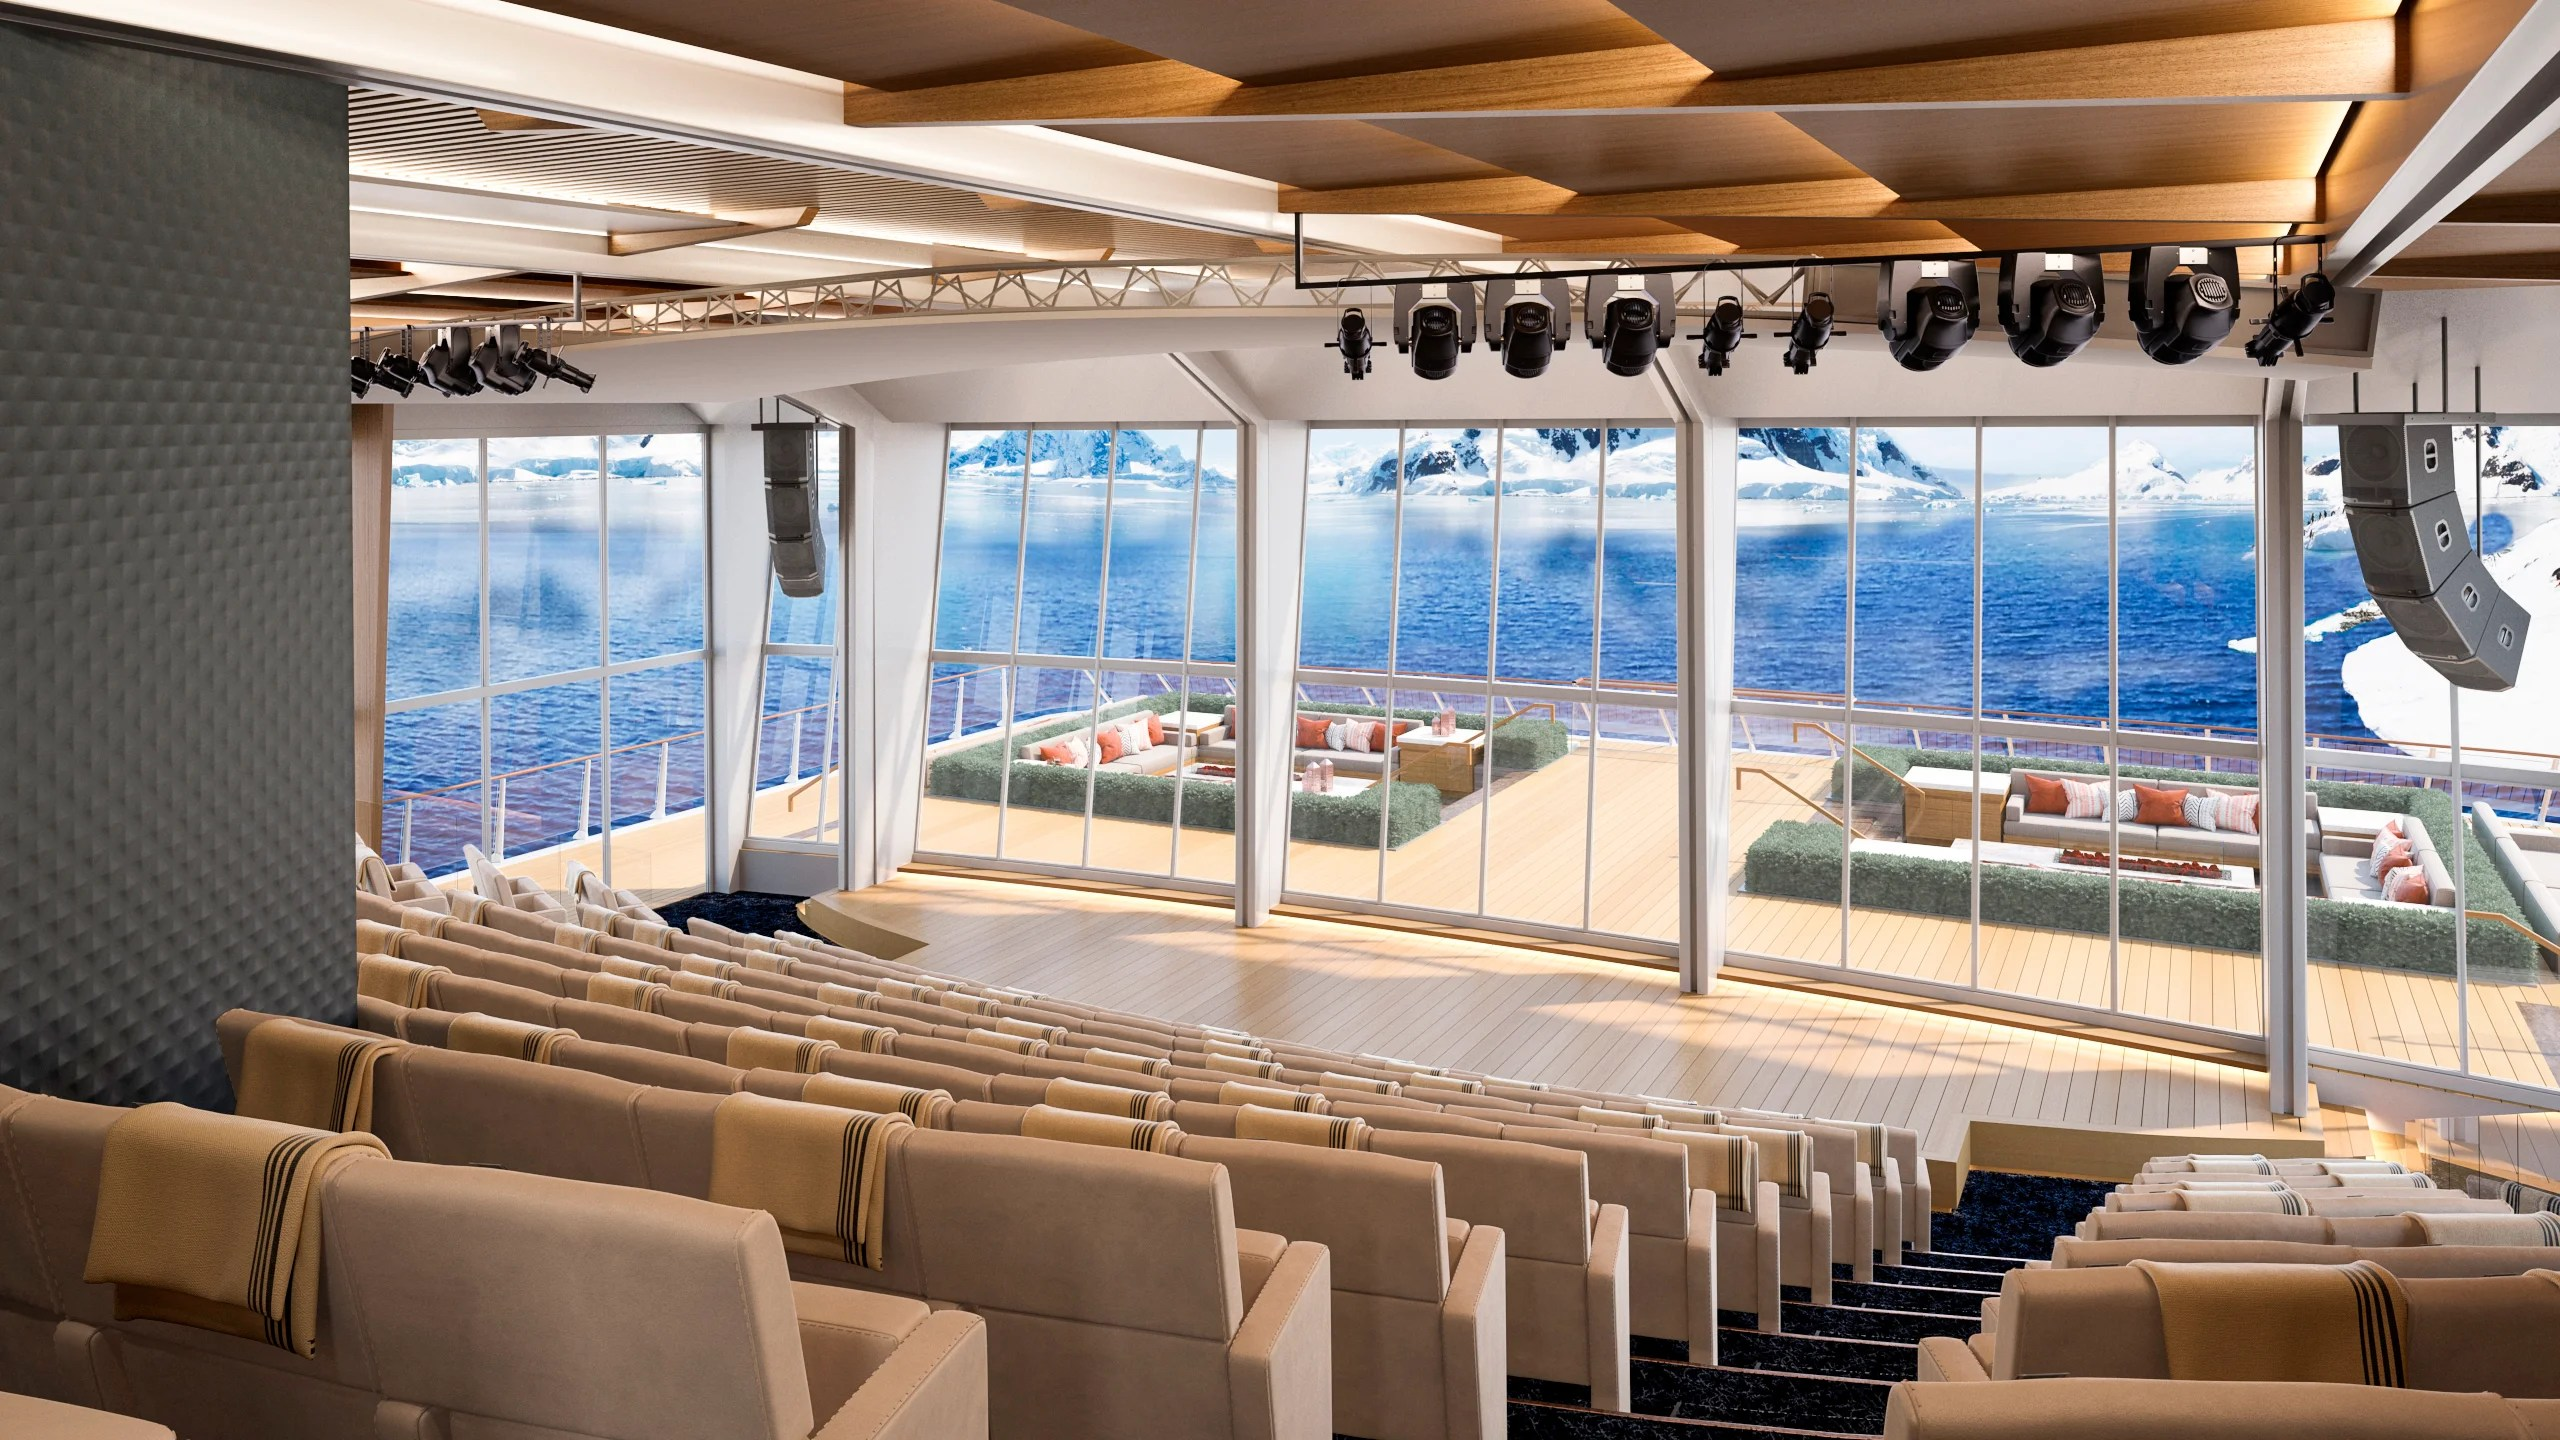 Lecture halls on Viking's new expedition ships will have walls that slide open to reveal stunning views through floor-to-ceiling glass. Image courtesy of Viking.